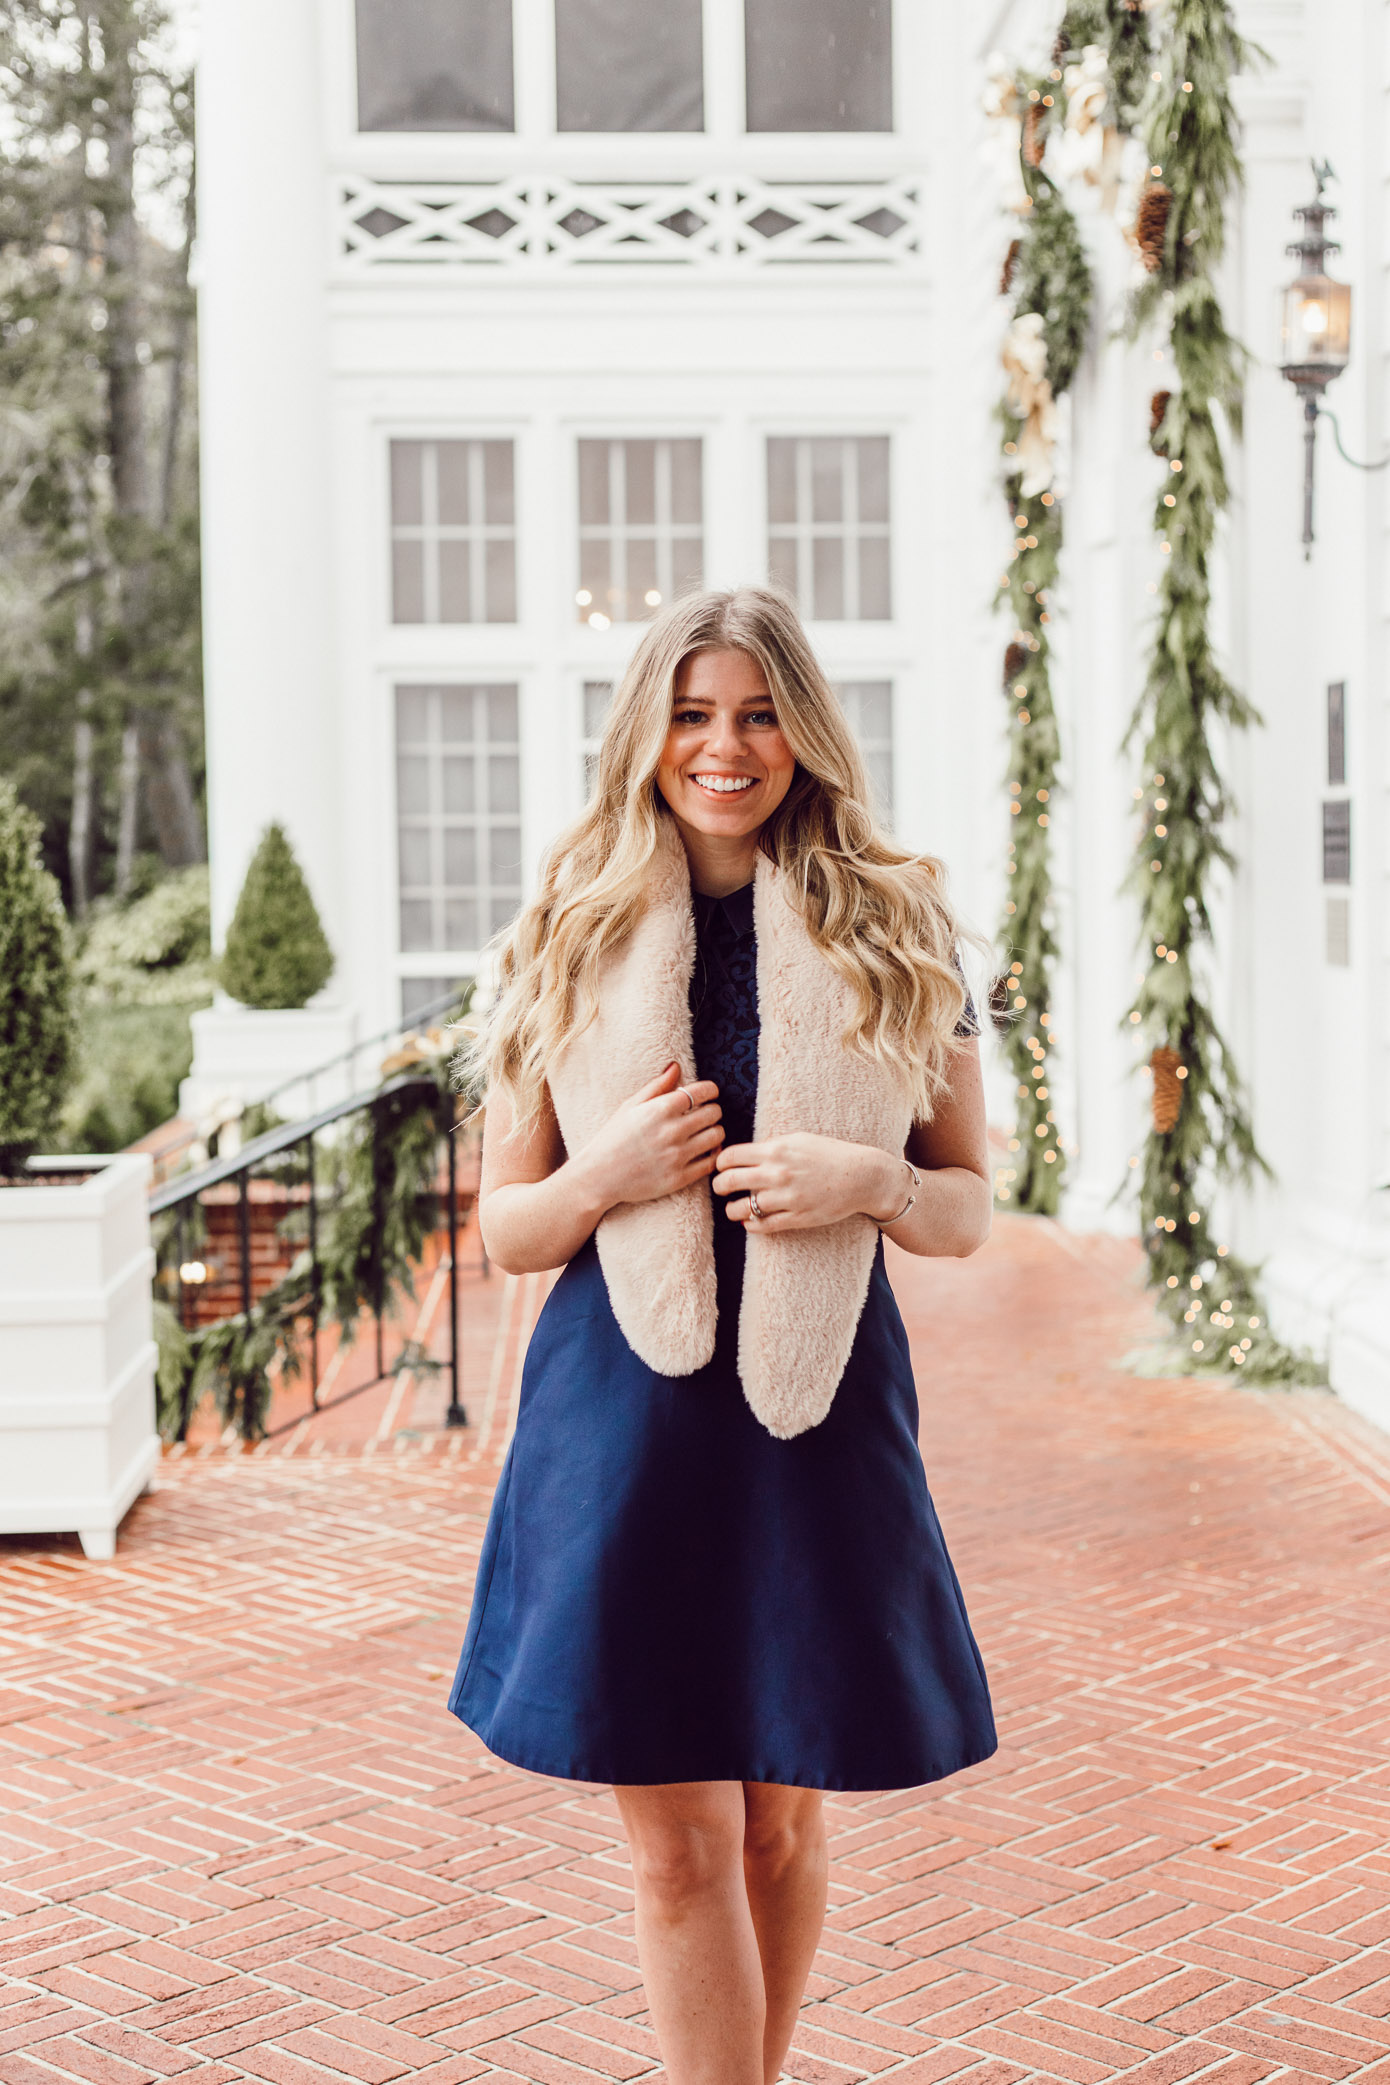 Finding the Perfect Holiday Party Dress with Rent the Runway on Louella Reese   Navy Lace Mini Dress, Christmas Party Dress, Faux Fur Stole